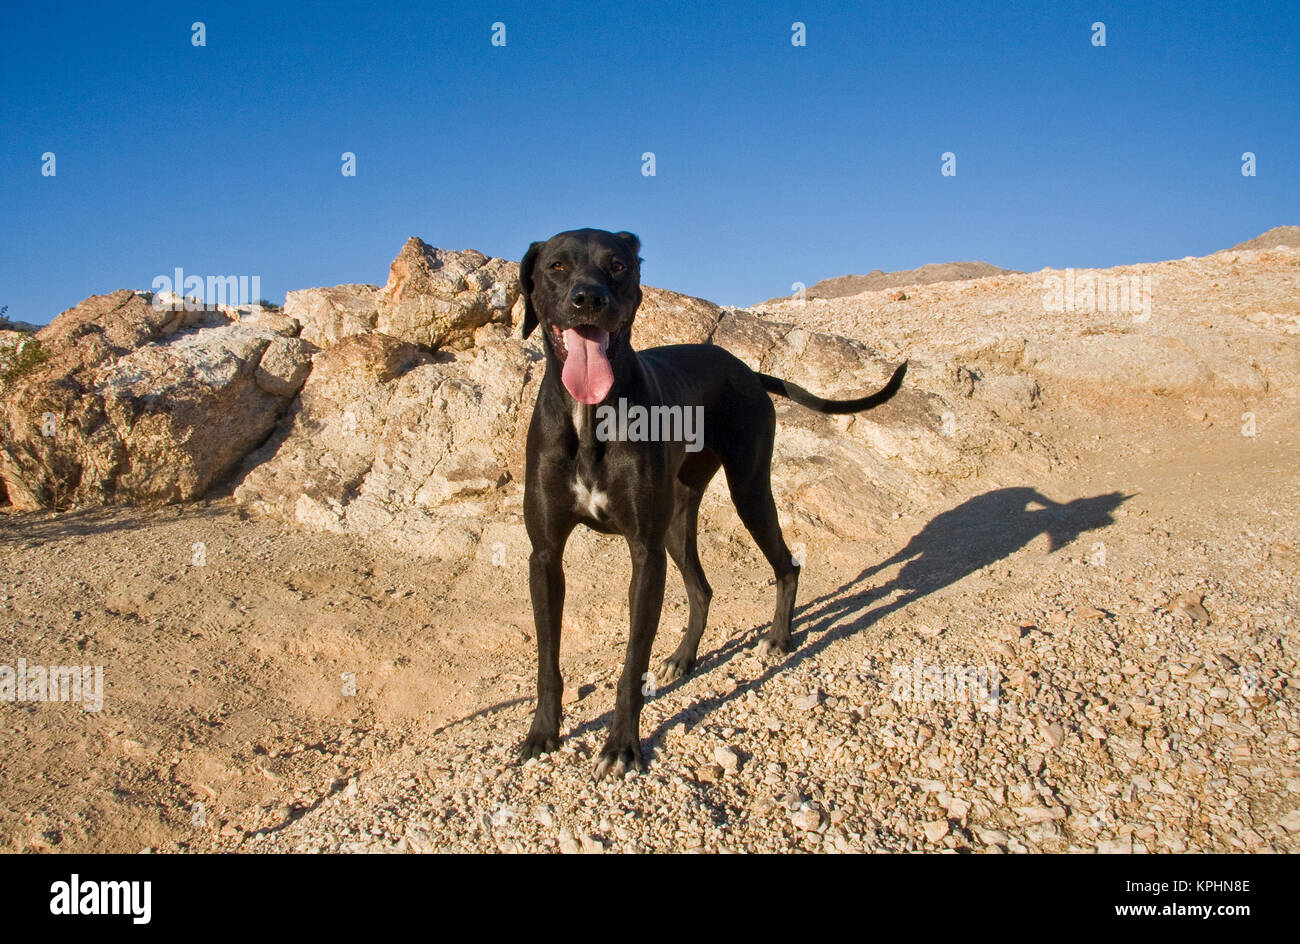 A black German Shorthaired Pointer standing on a rocky hill. - Stock Image